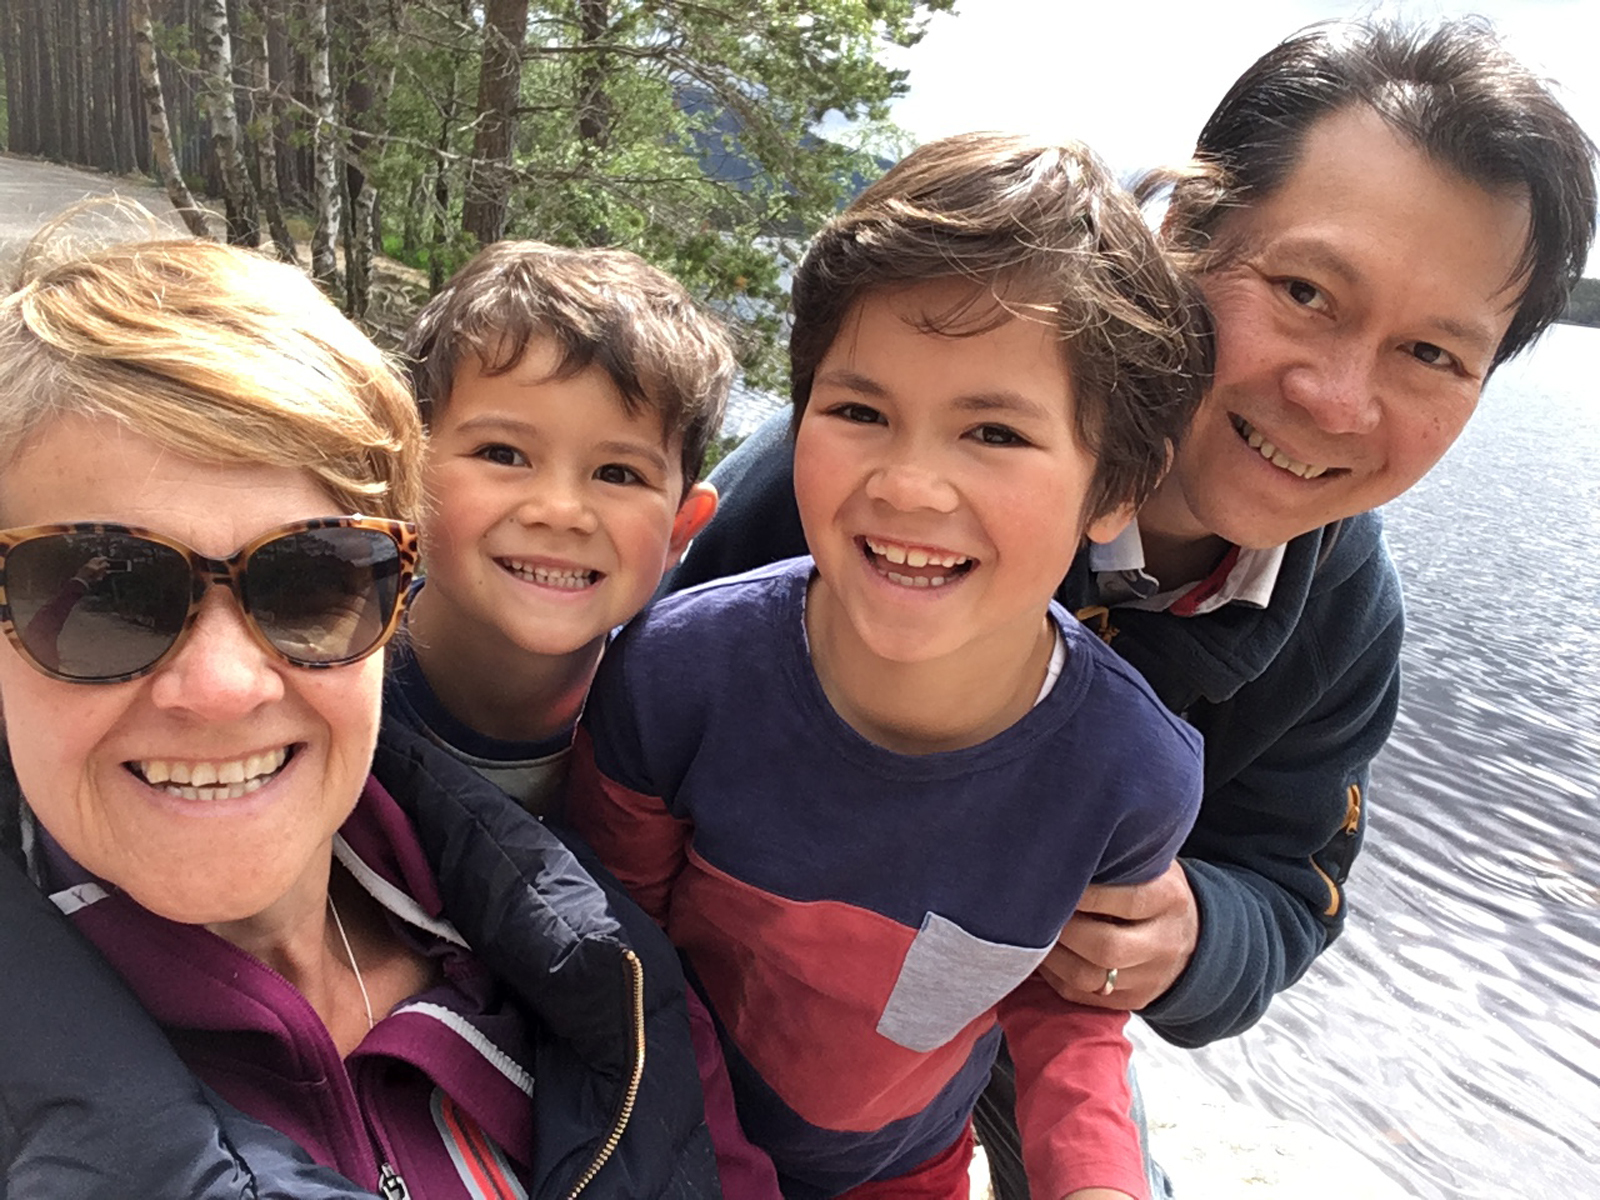 Anne MacLean-Chang is battling cancer for a fourth time - but has been refused a widely hailed breast cancer treatment called Kadcyla on the NHS. L-R Anne, children Ollie, Nathan and husband Winston